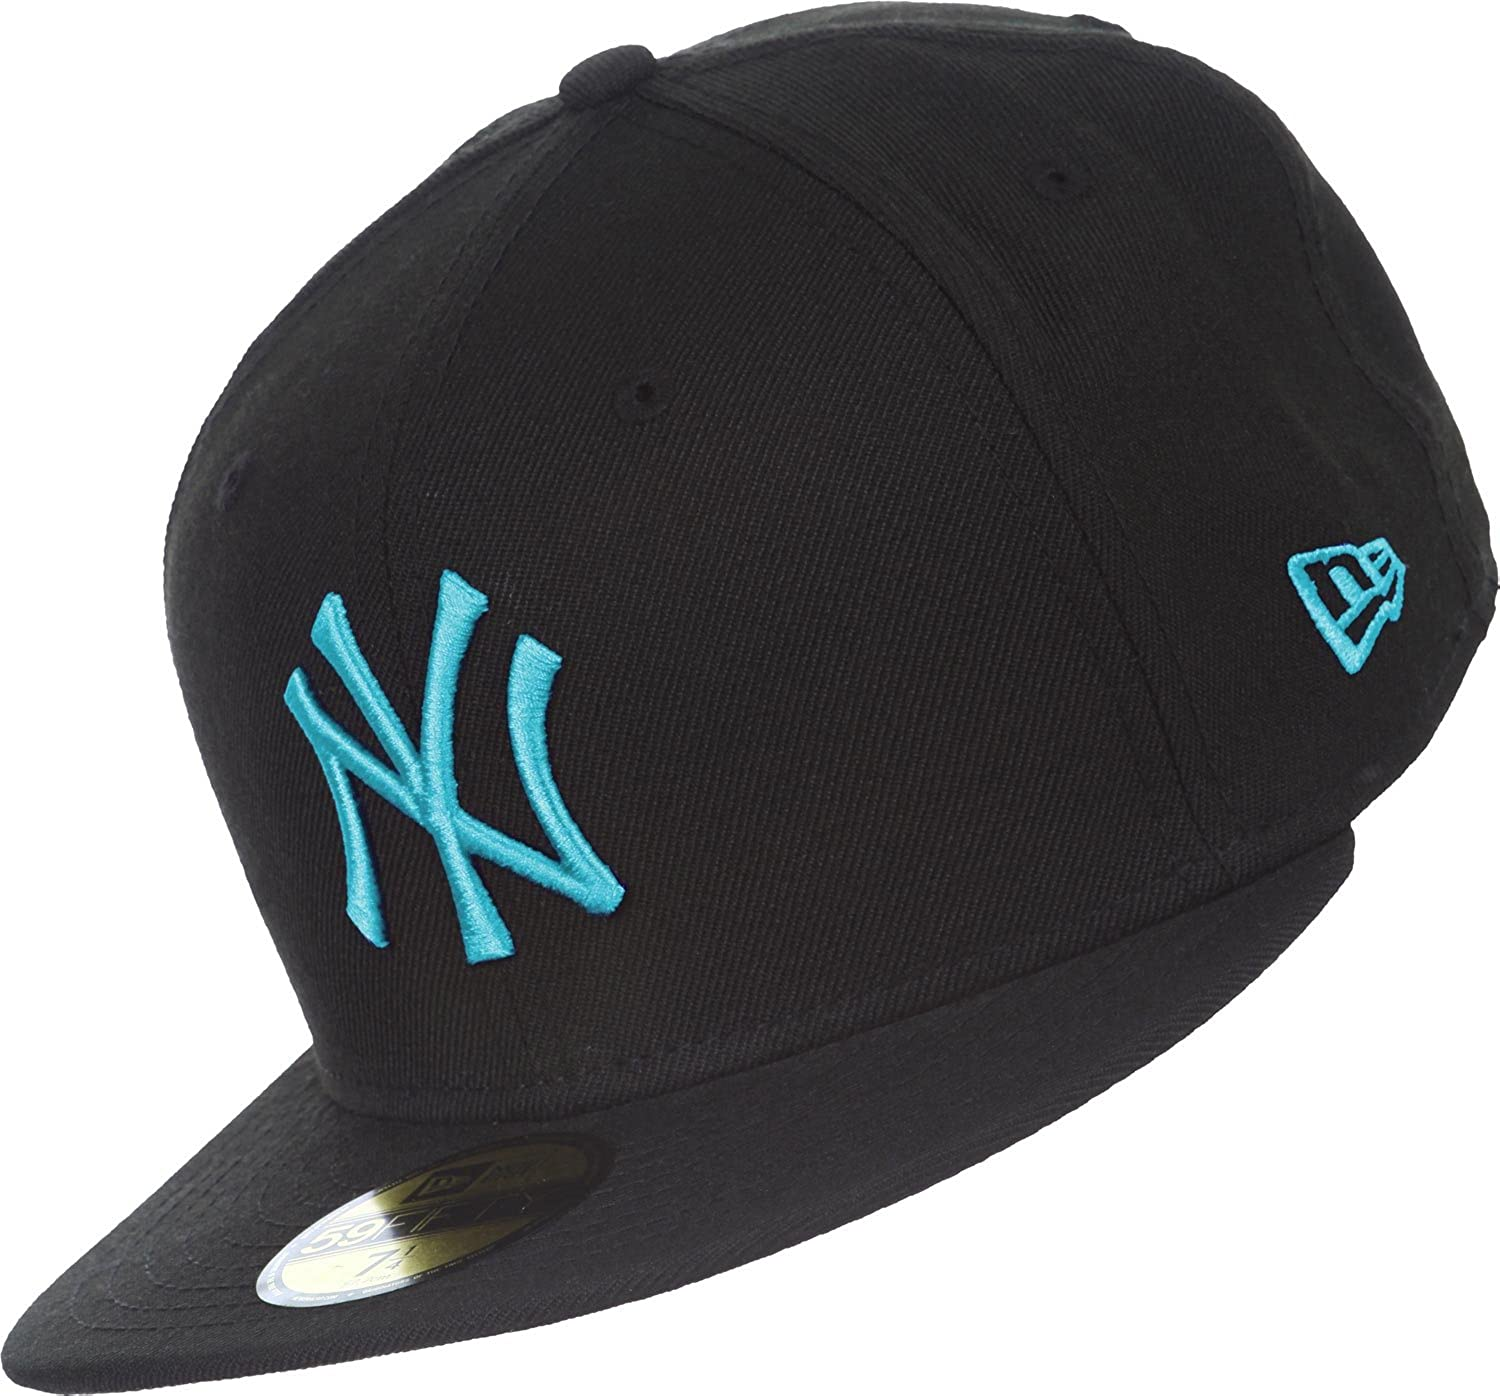 Gorra New Era: Seas Basic MLB New York Yankees BK/BL: Amazon.es ...